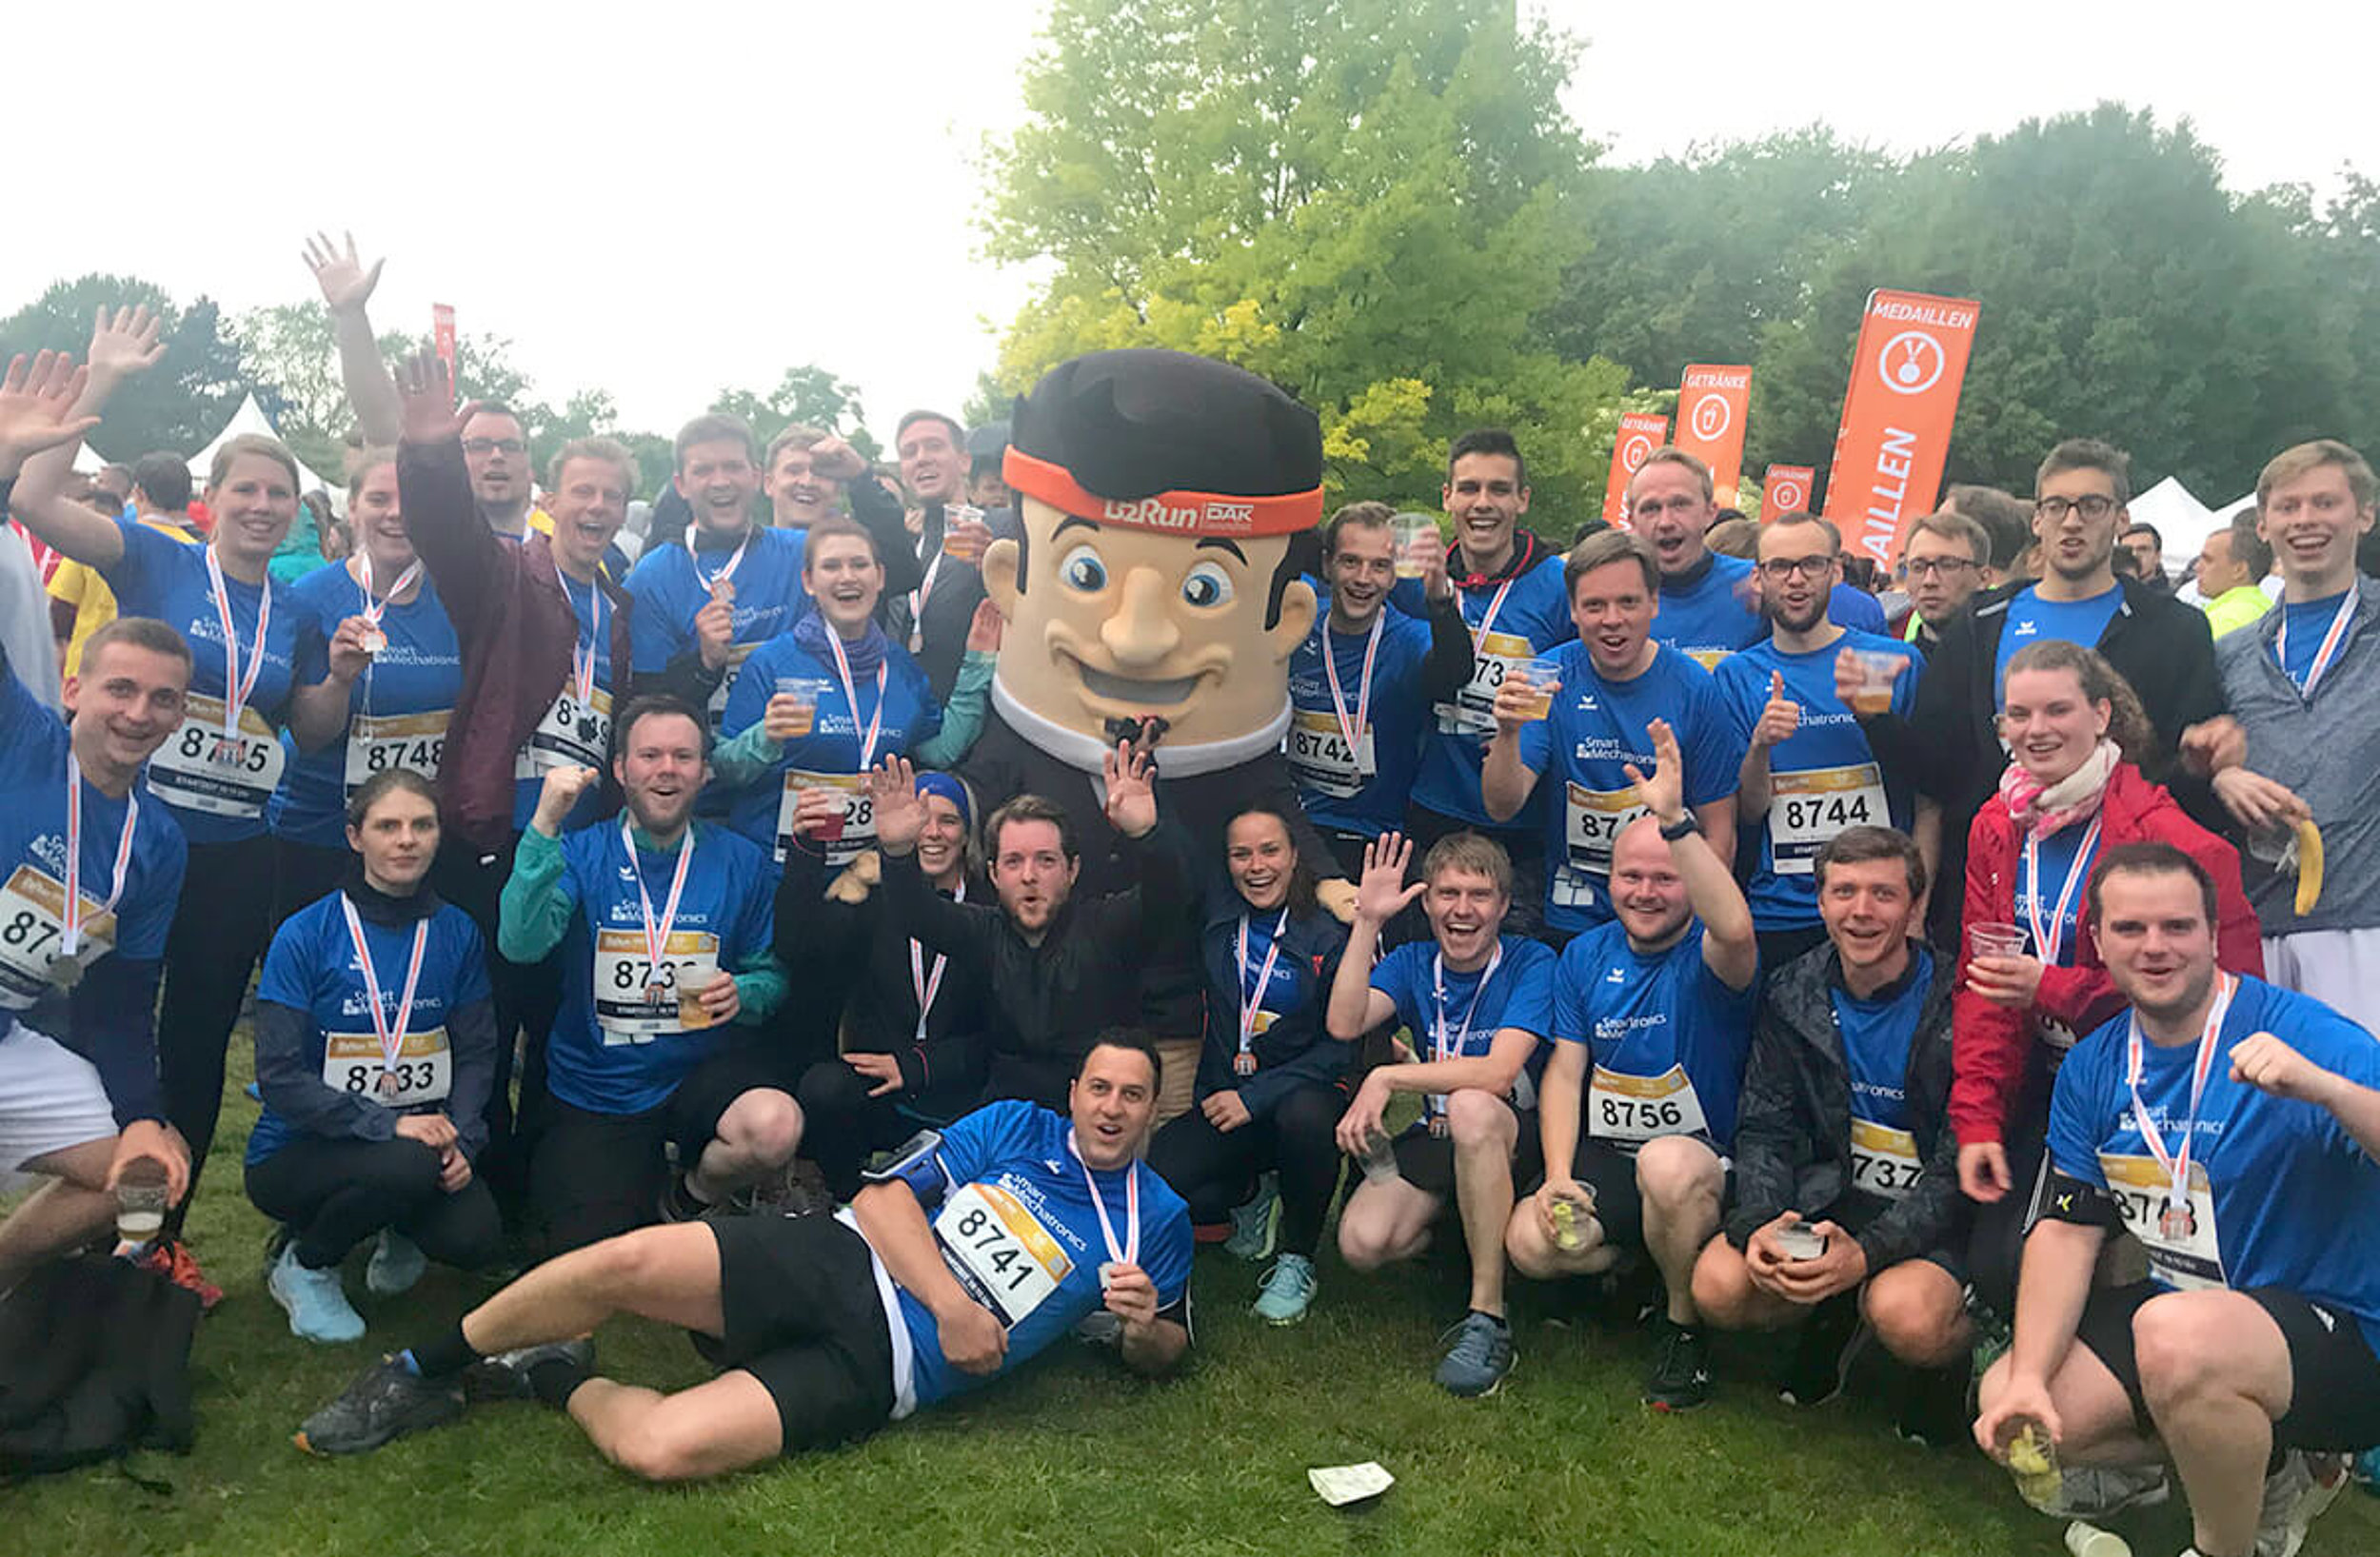 Smart Mechatronics bei B2Run Lauf in Dortmund